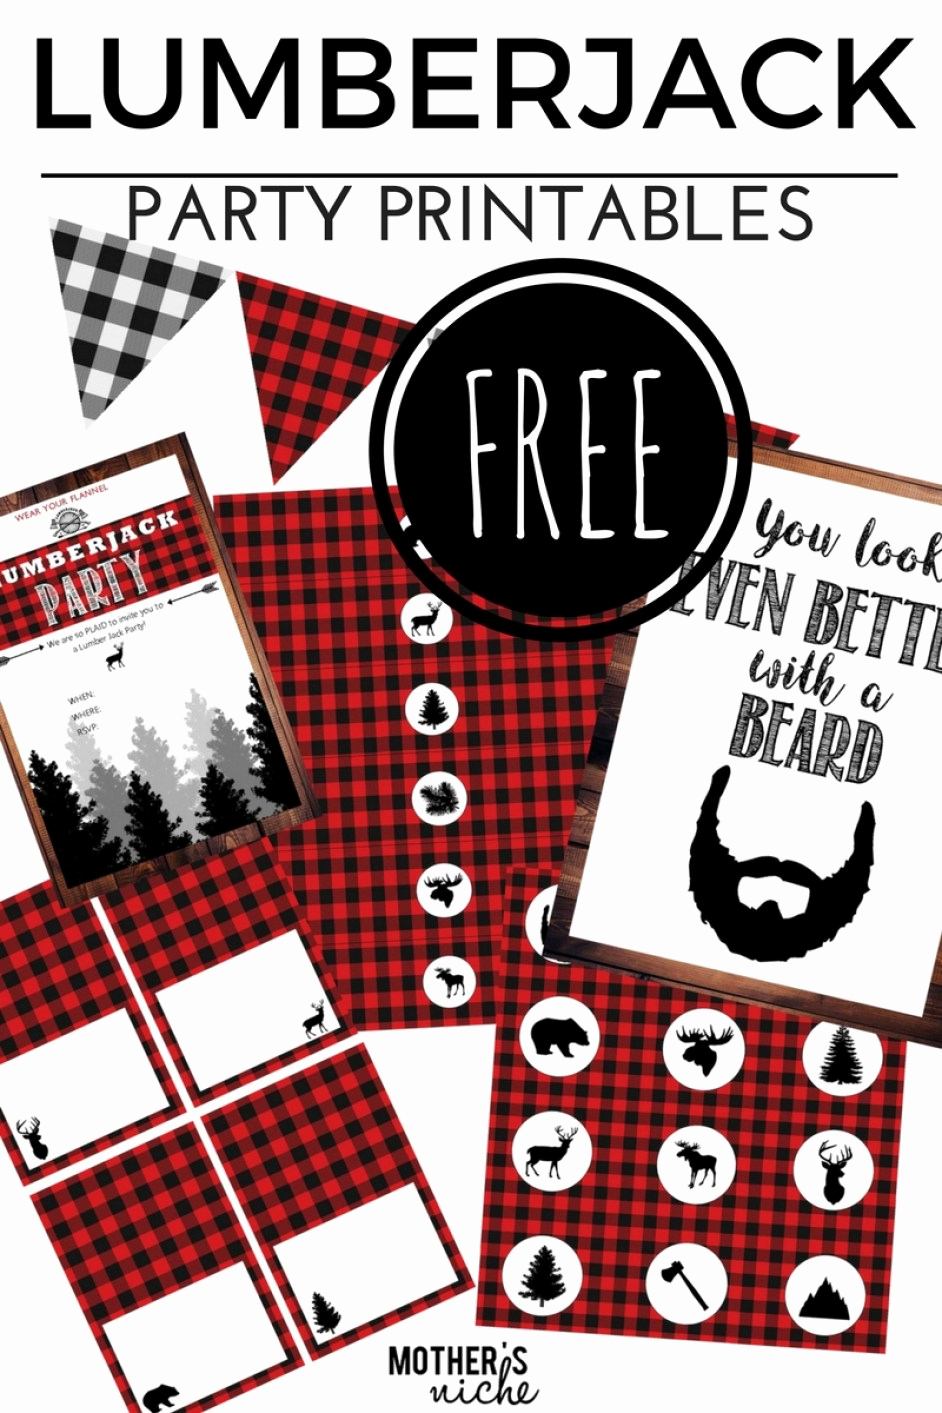 Lumberjack Invitation Template Free Fresh Lumber Jack Party with All the Free Party Printables You Need